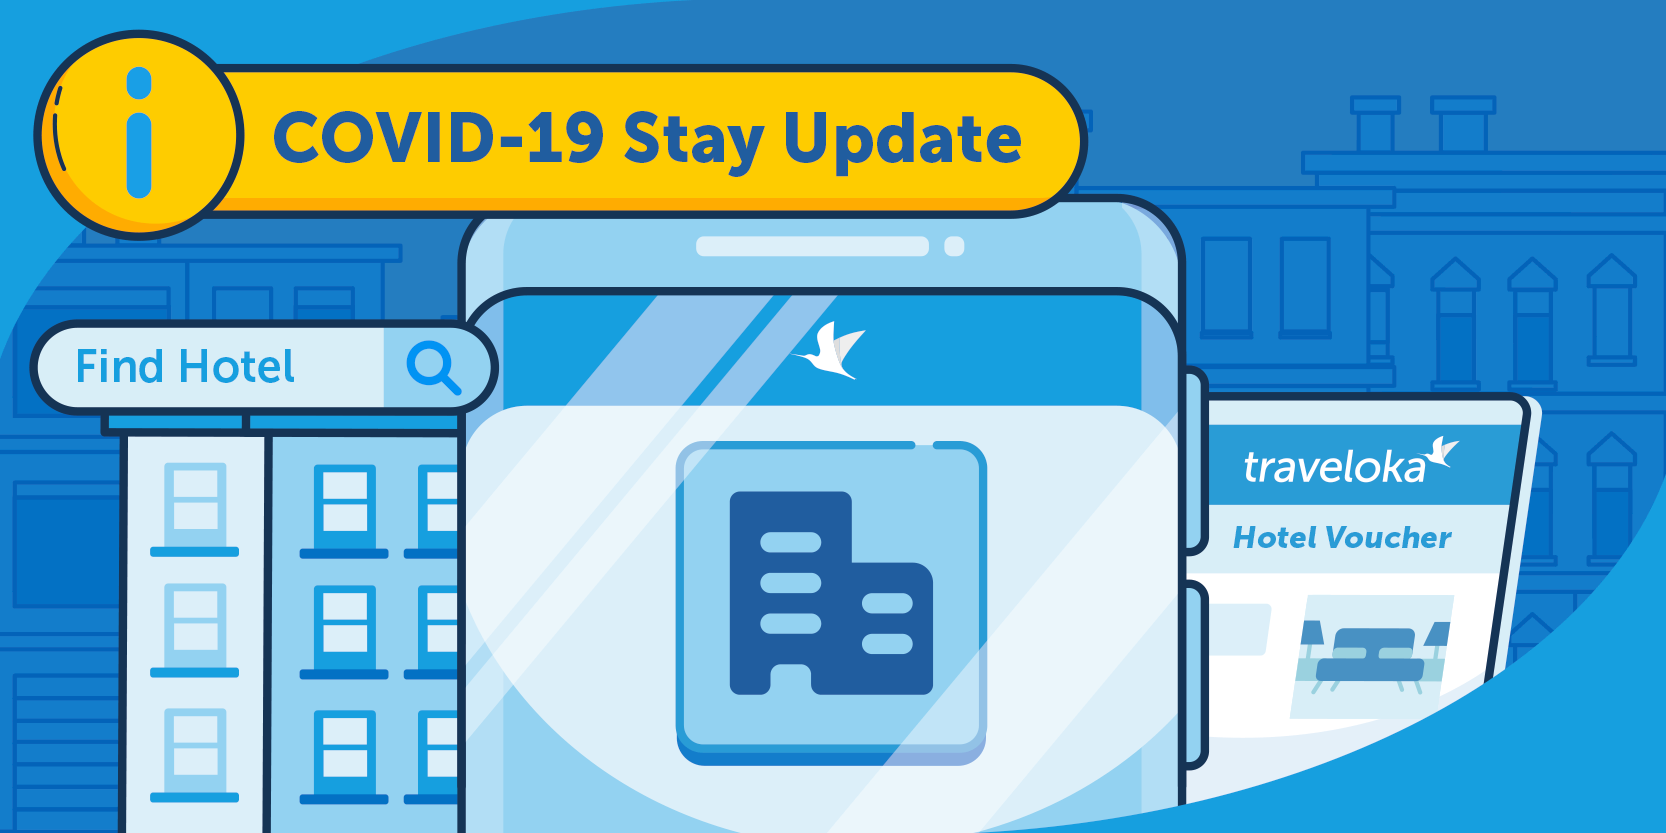 Stay up-to date with COVID-19